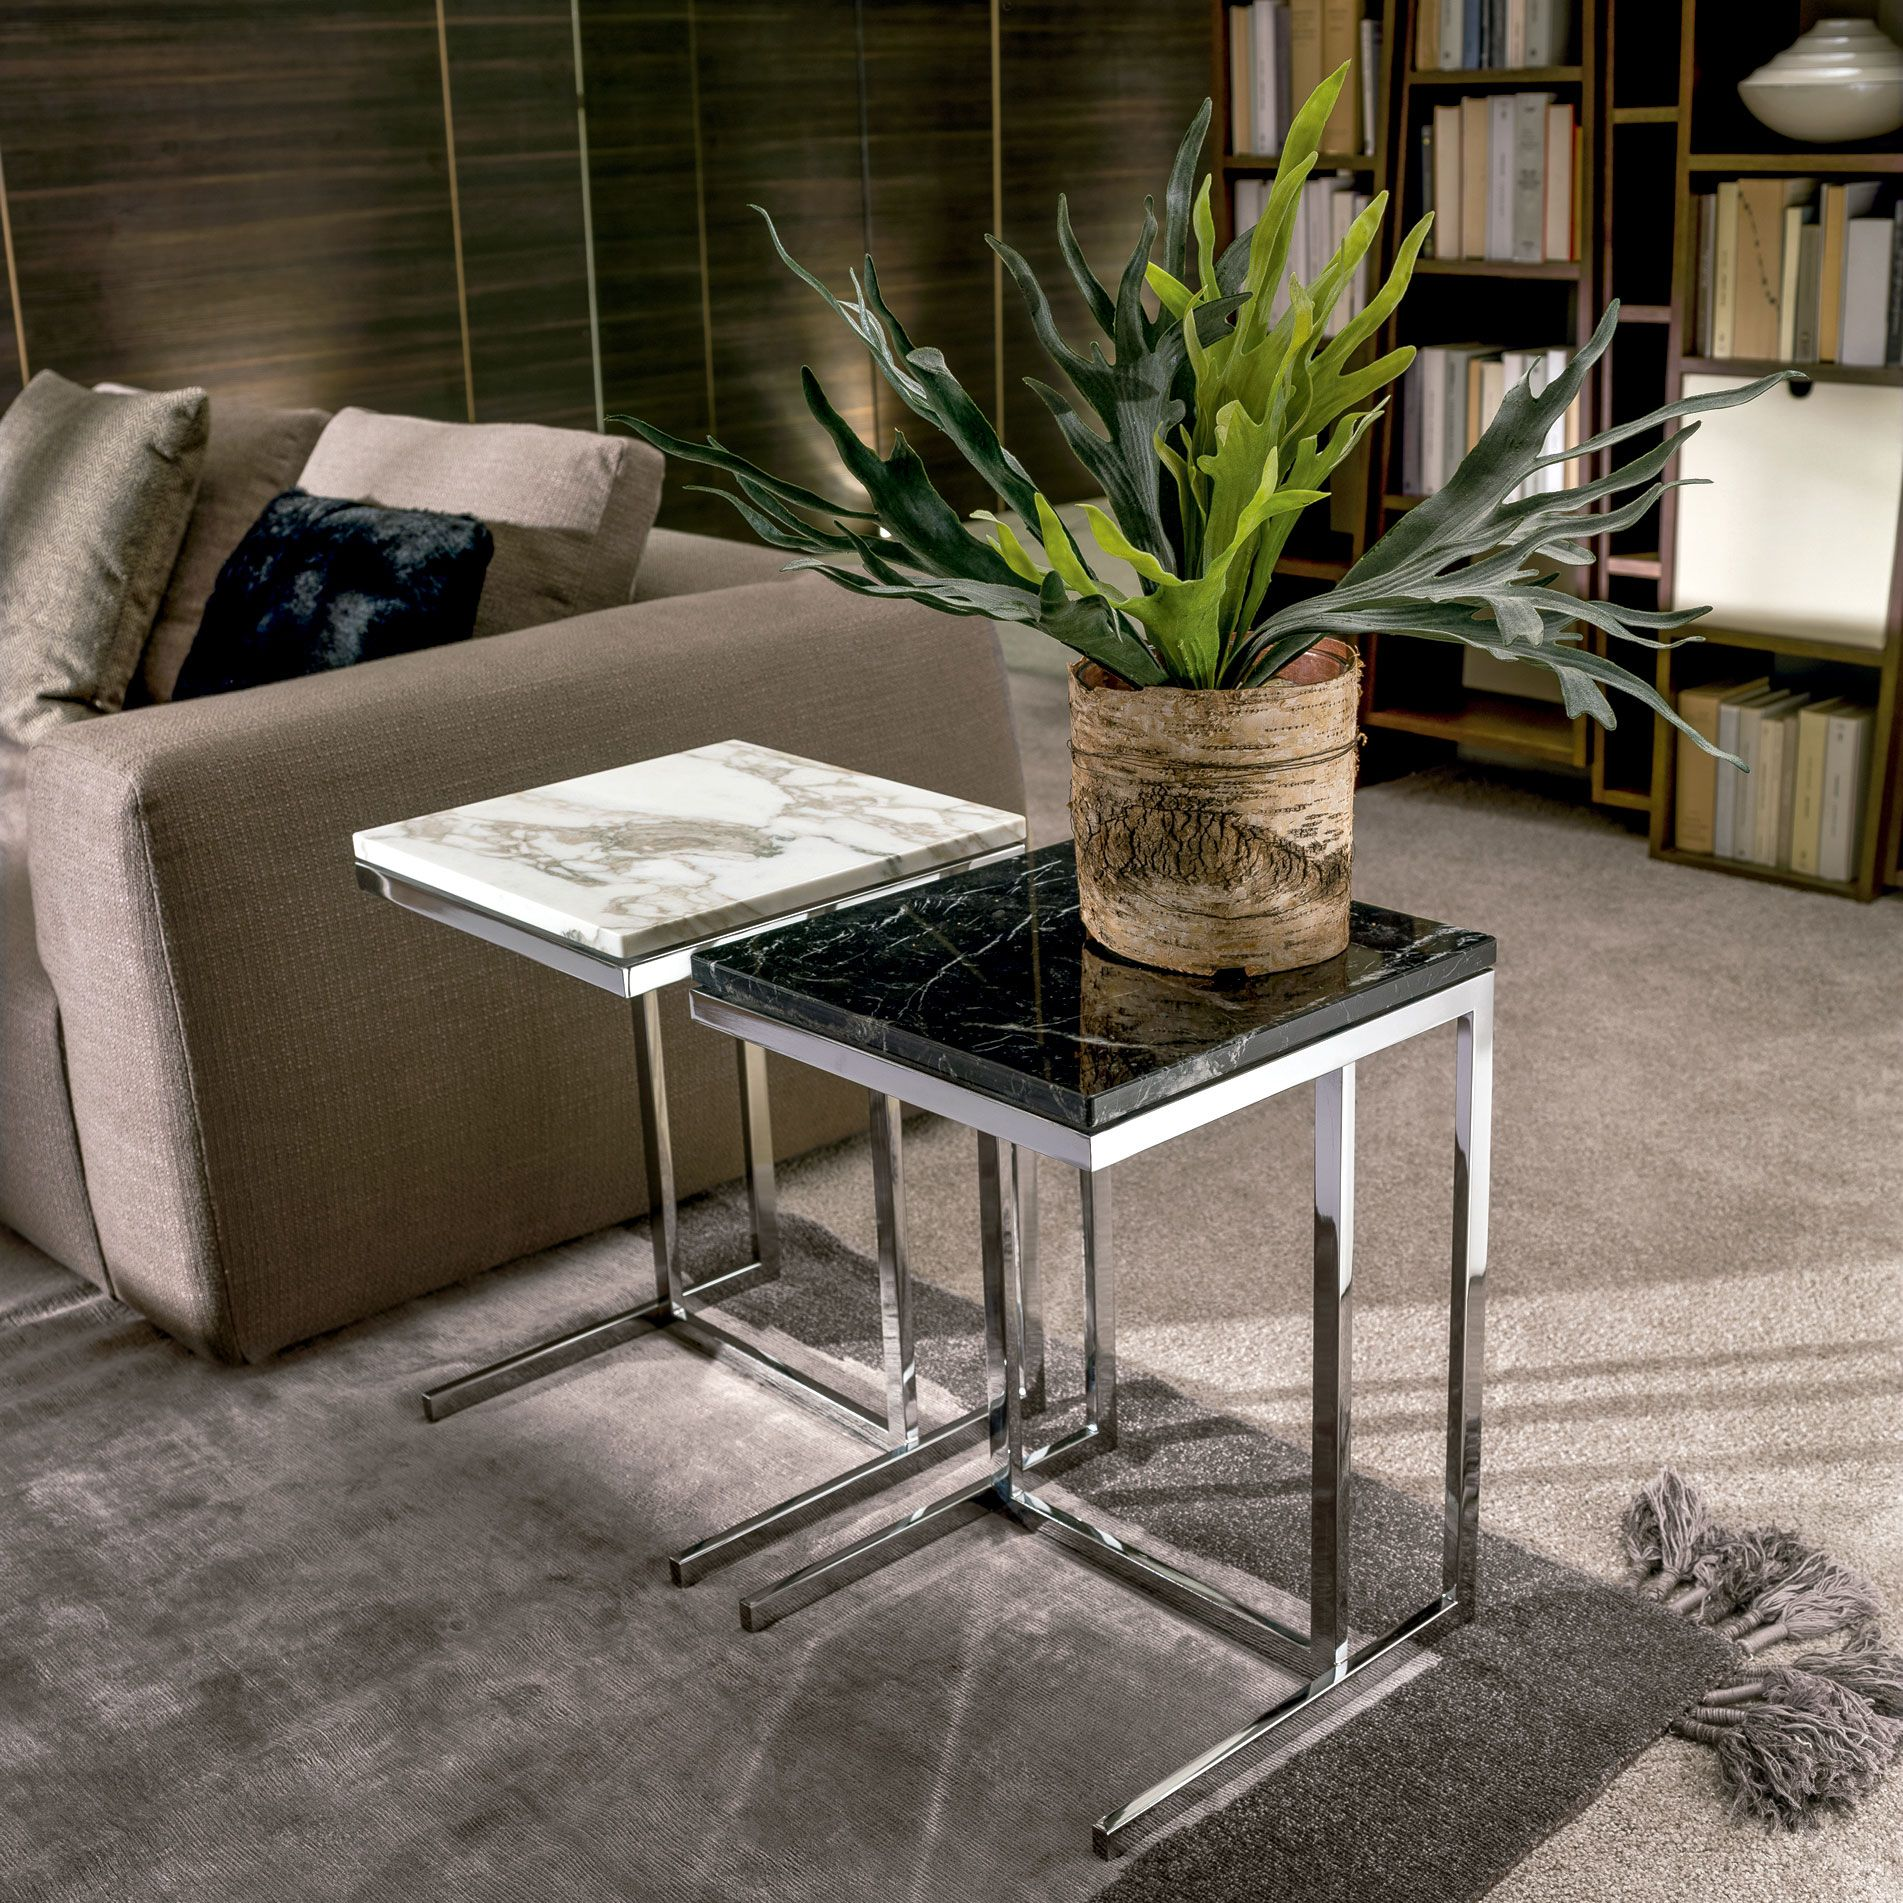 Kubico Side Table Accent Table Decor Marble Furniture Granite Coffee Table [ 1903 x 1903 Pixel ]